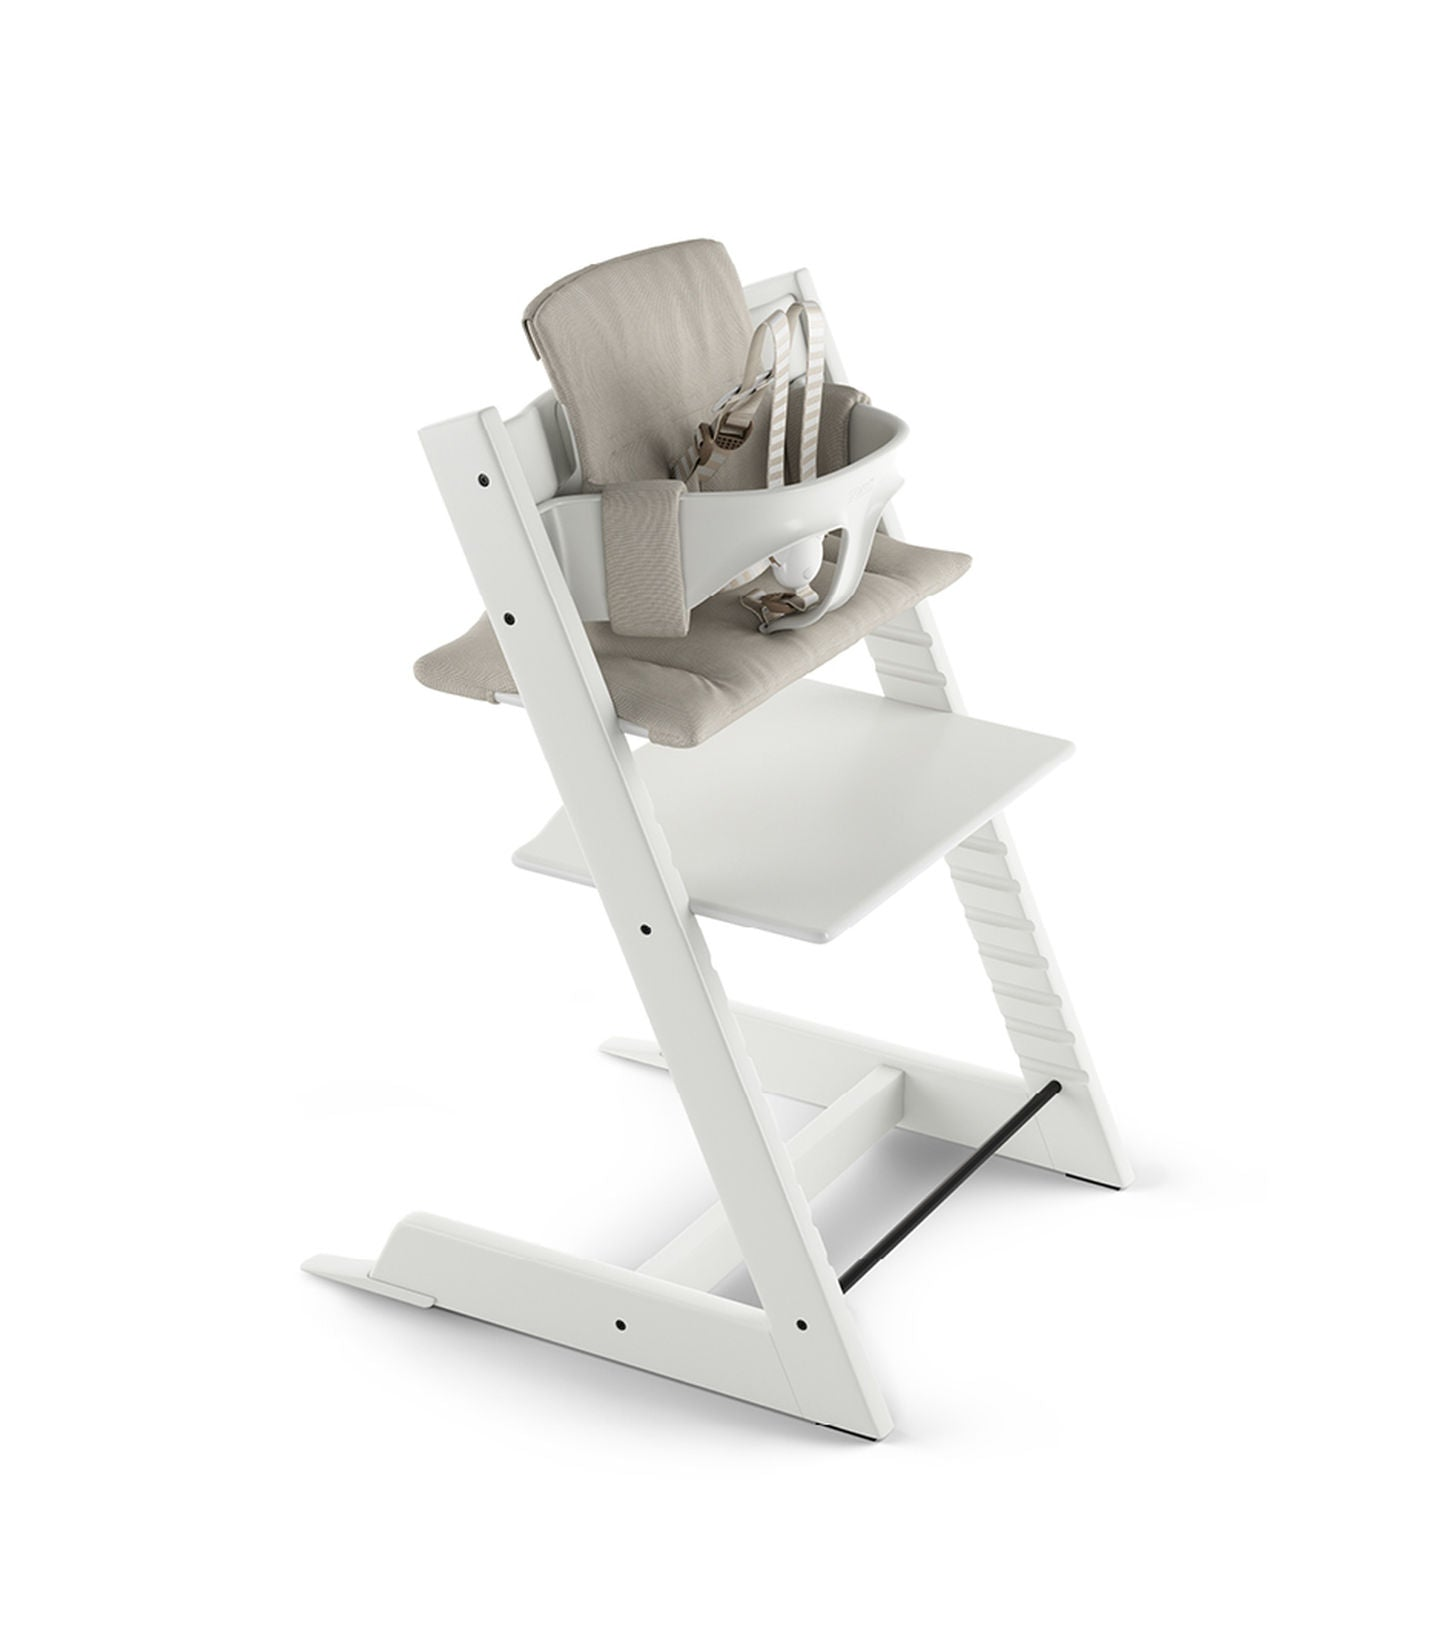 Stokke Tripp Trapp Classic Cushions